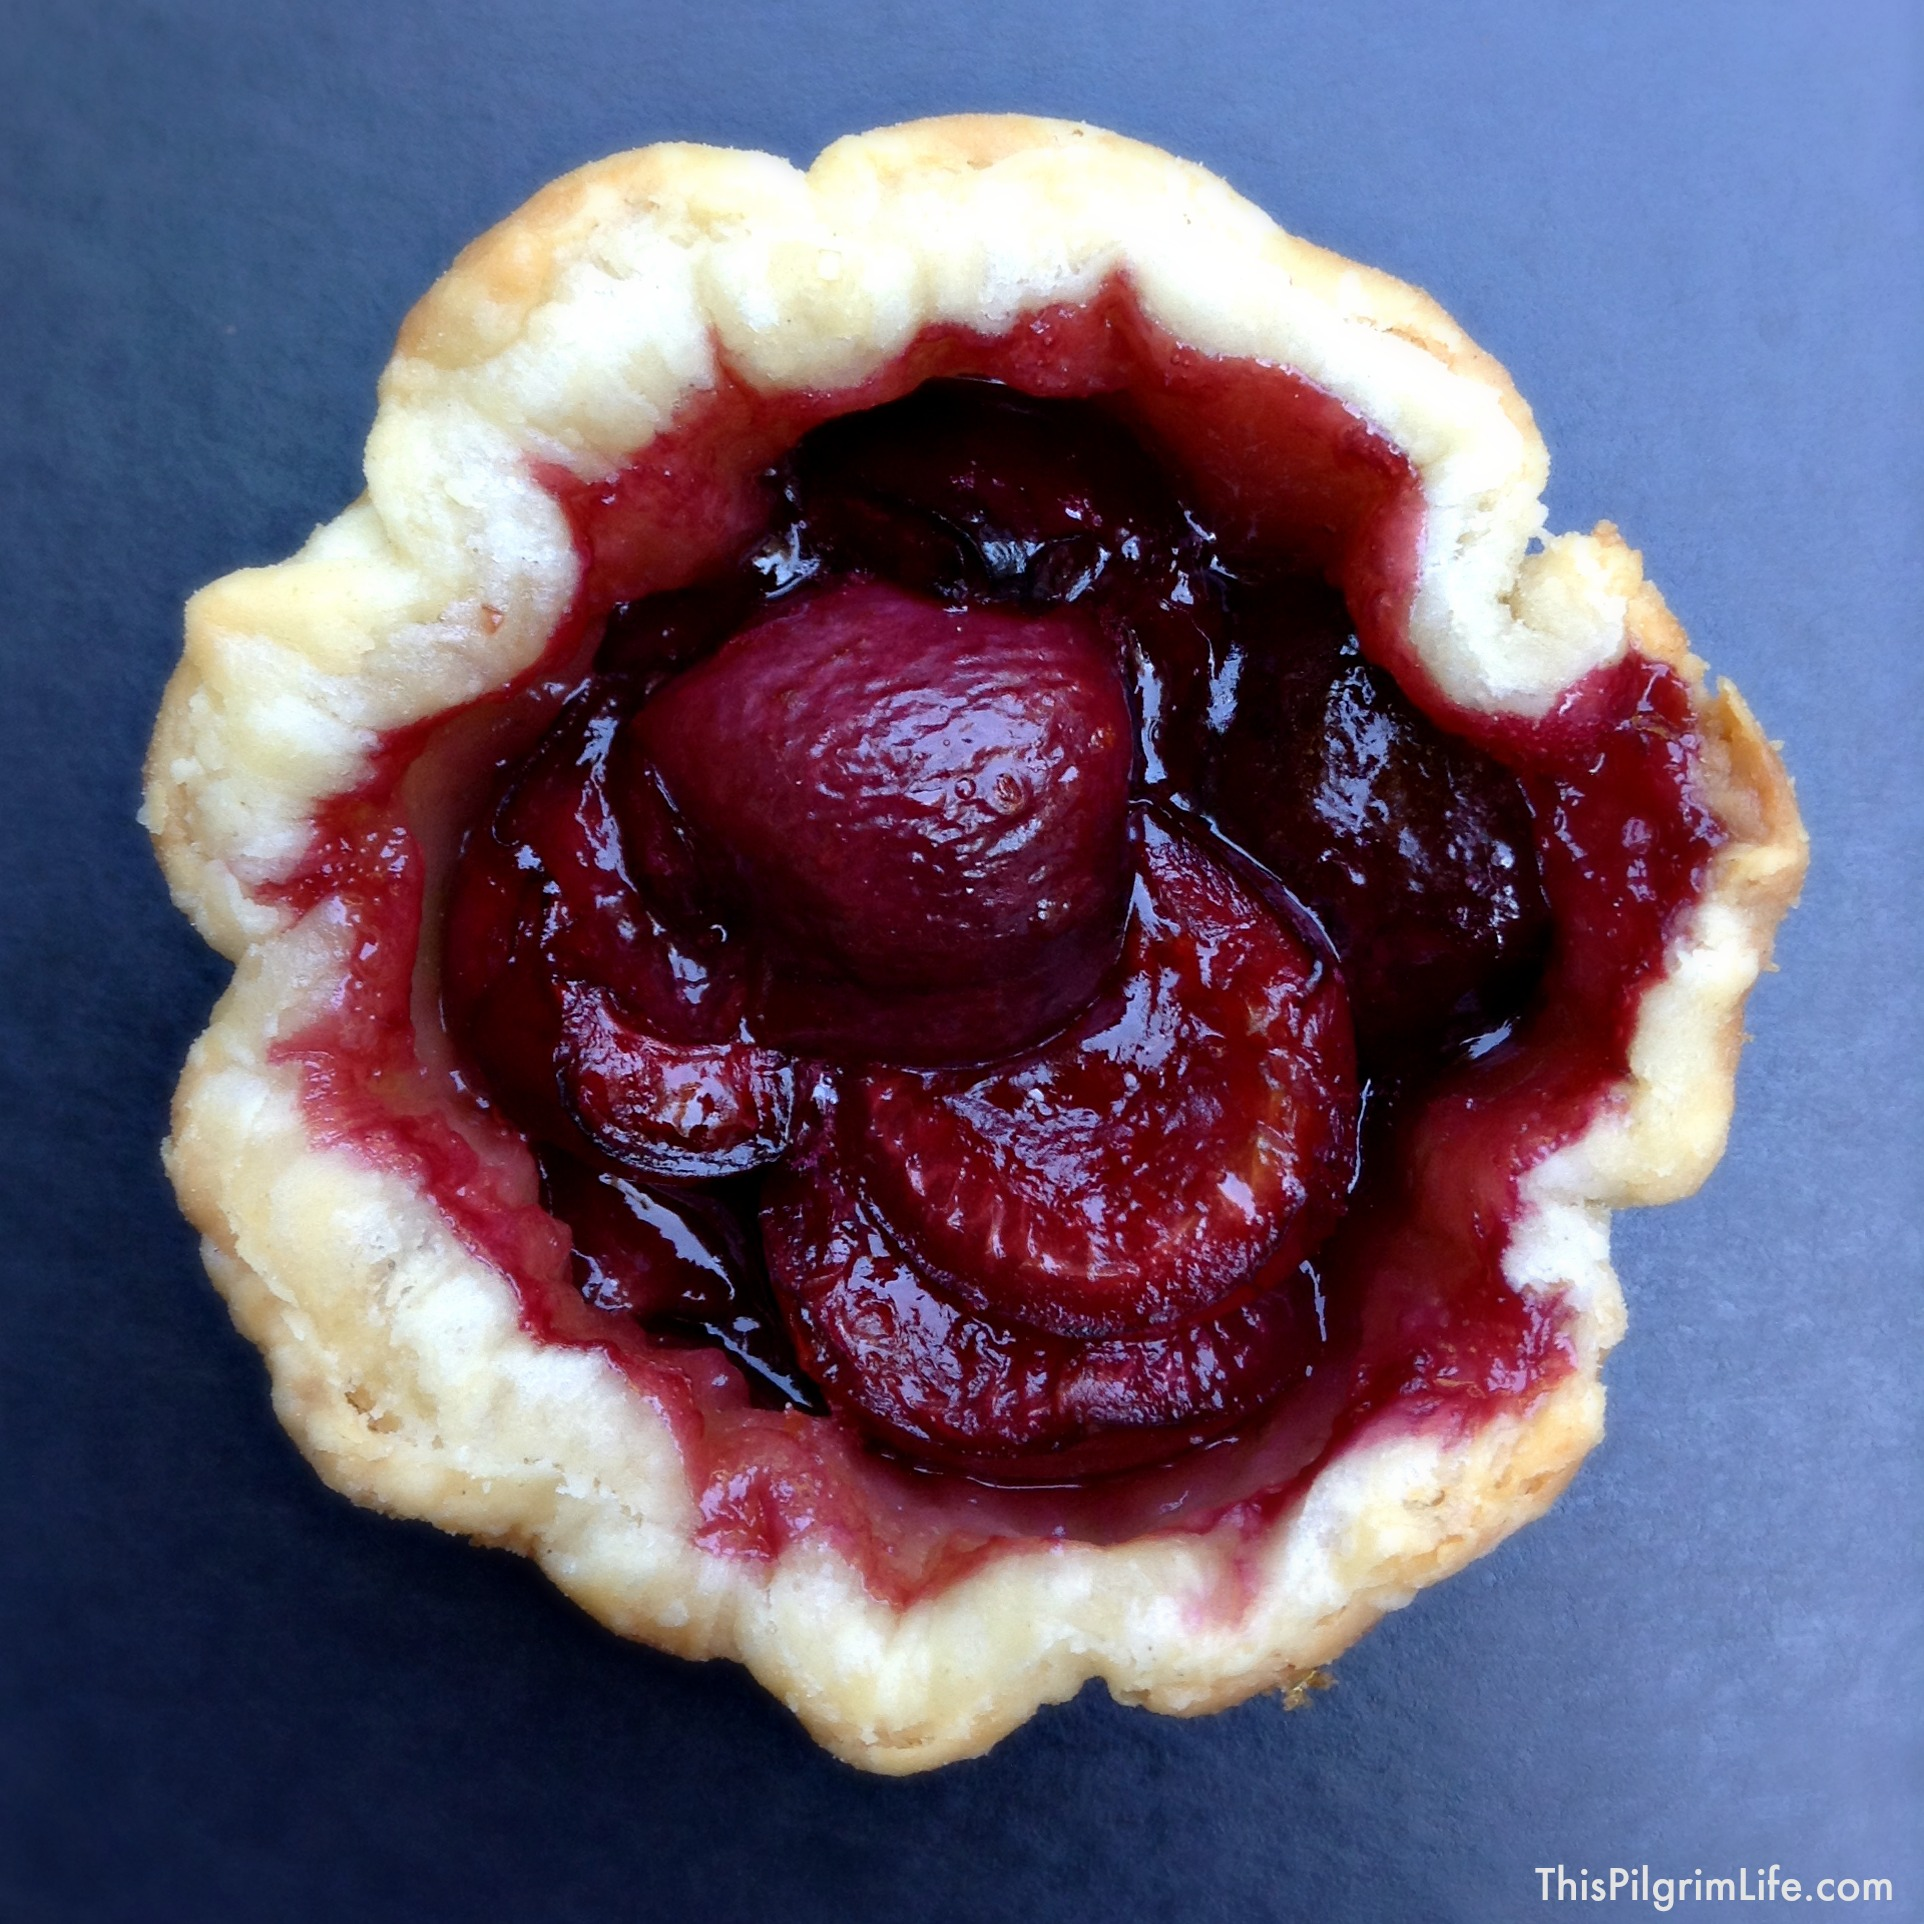 Individual cherry pies, SO GOOD and perfect for outdoor cookouts and holiday gatherings!